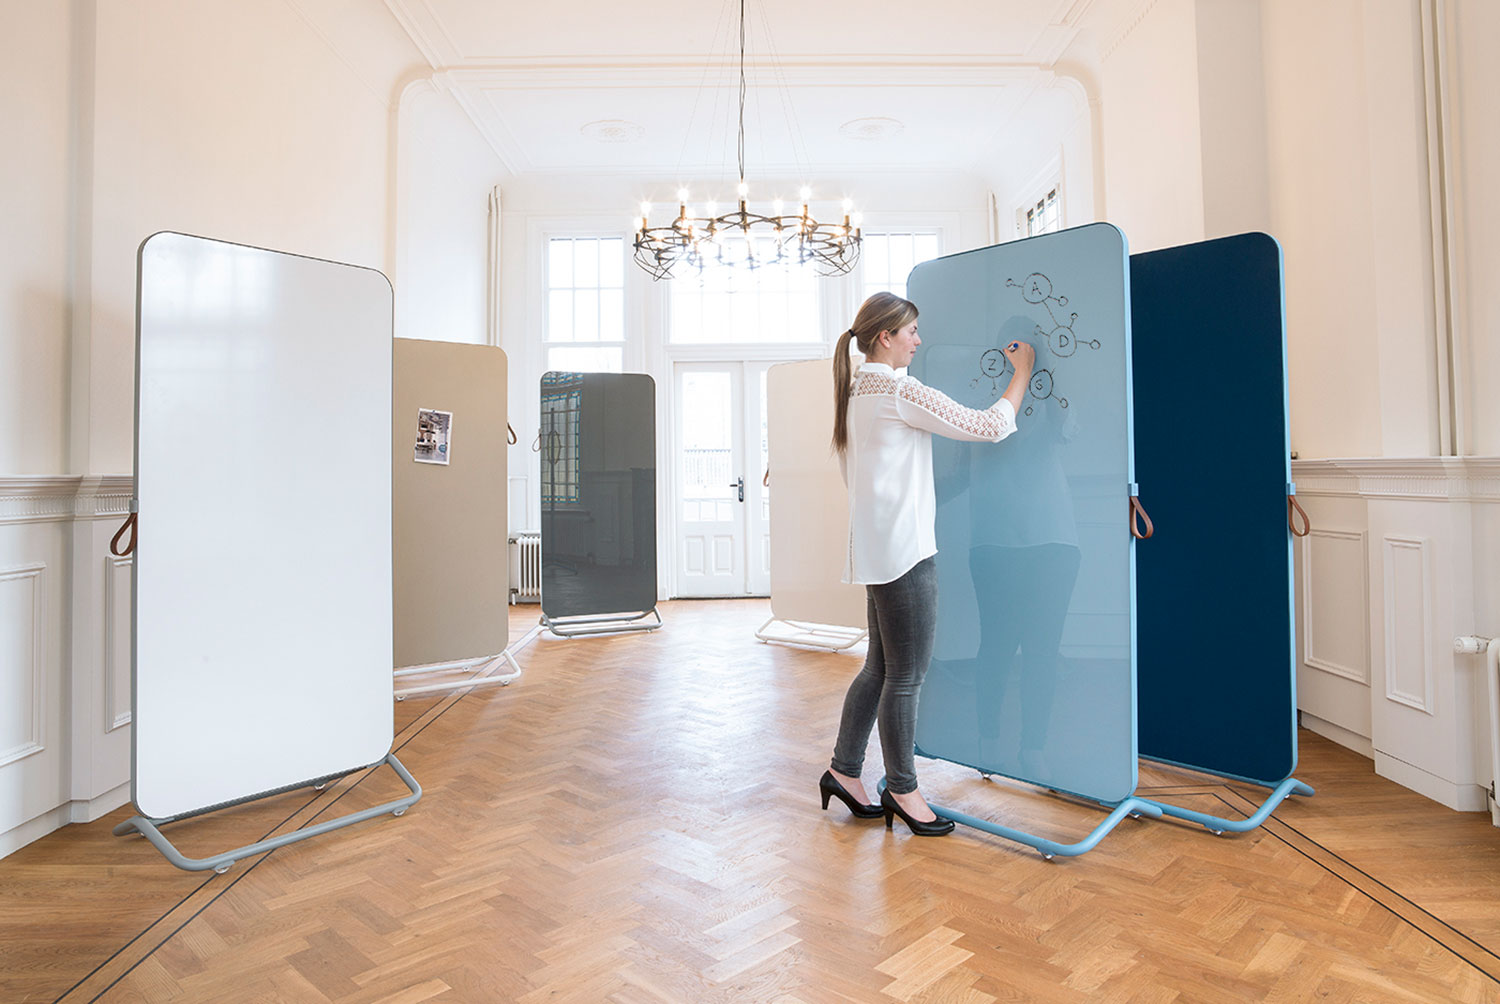 Chameleon Mobile - This elegant whiteboard is mobile, making it easy to take into any workplace. Particularly in an open plan office, where desks are often not placed against a wall, the benefits of a mobile, standalone writing board are obvious.